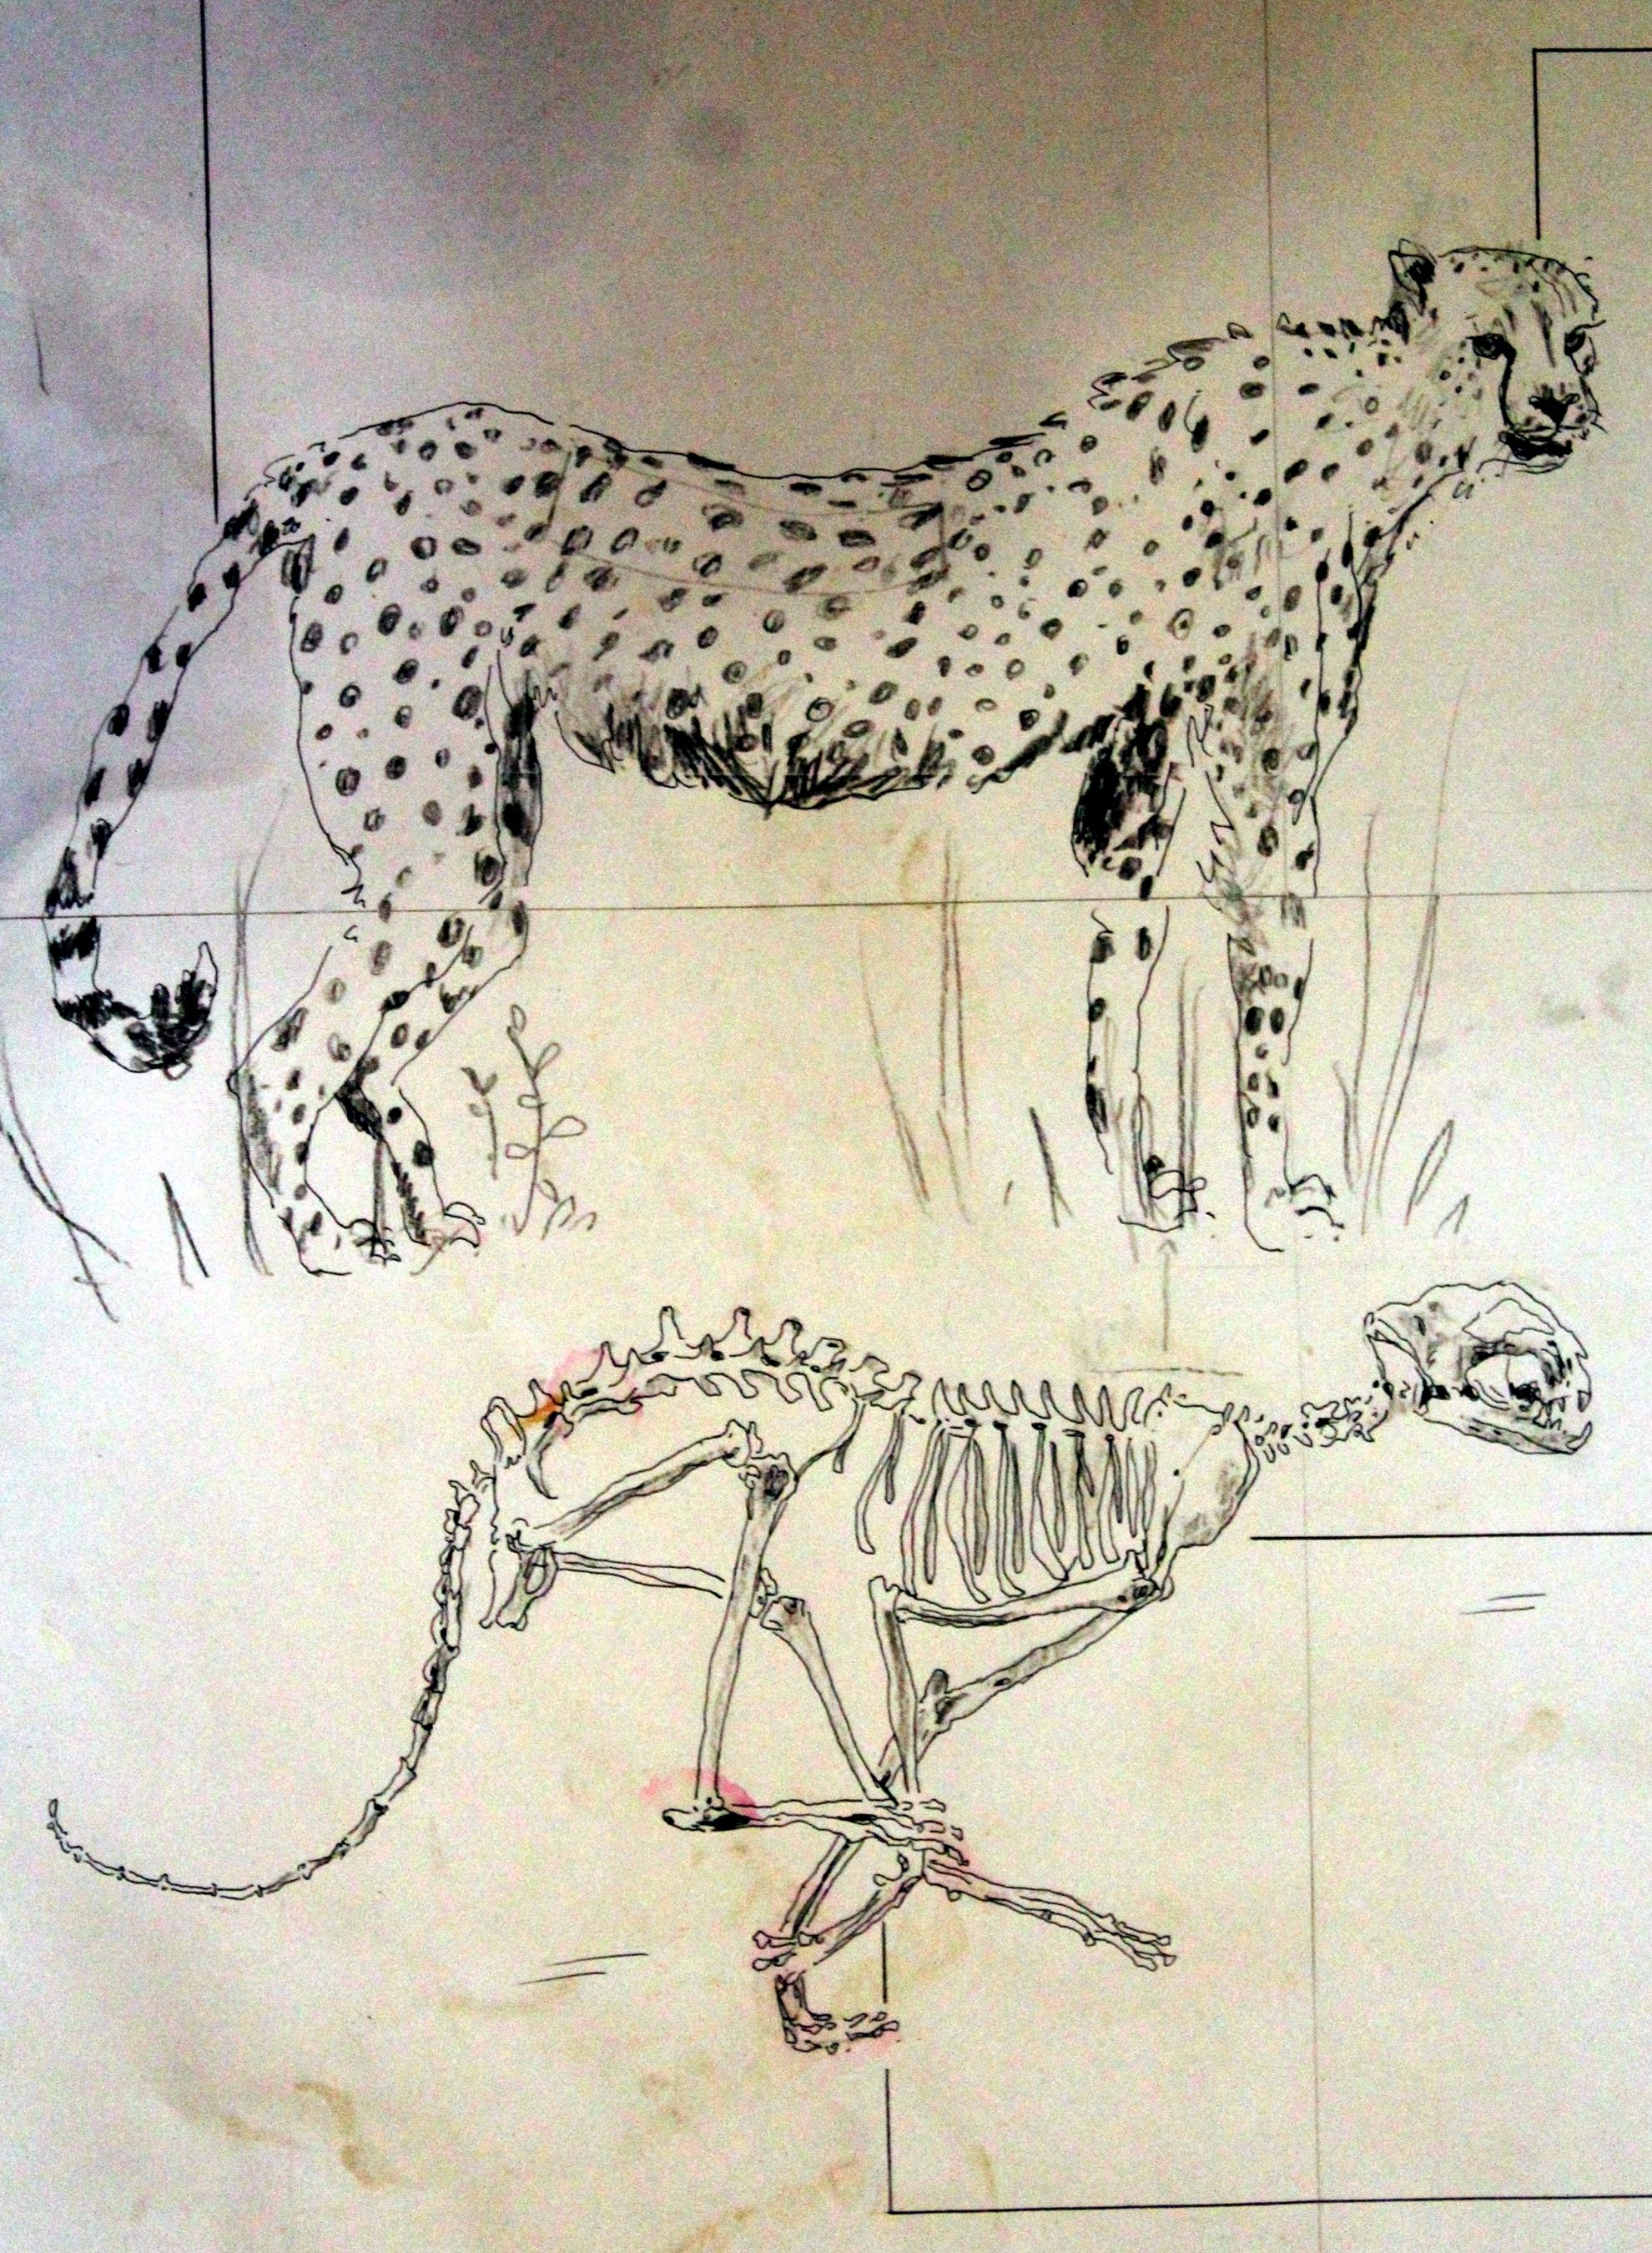 Cheetah Anatomy: Tail acts like a rudder to counter balance weight ...